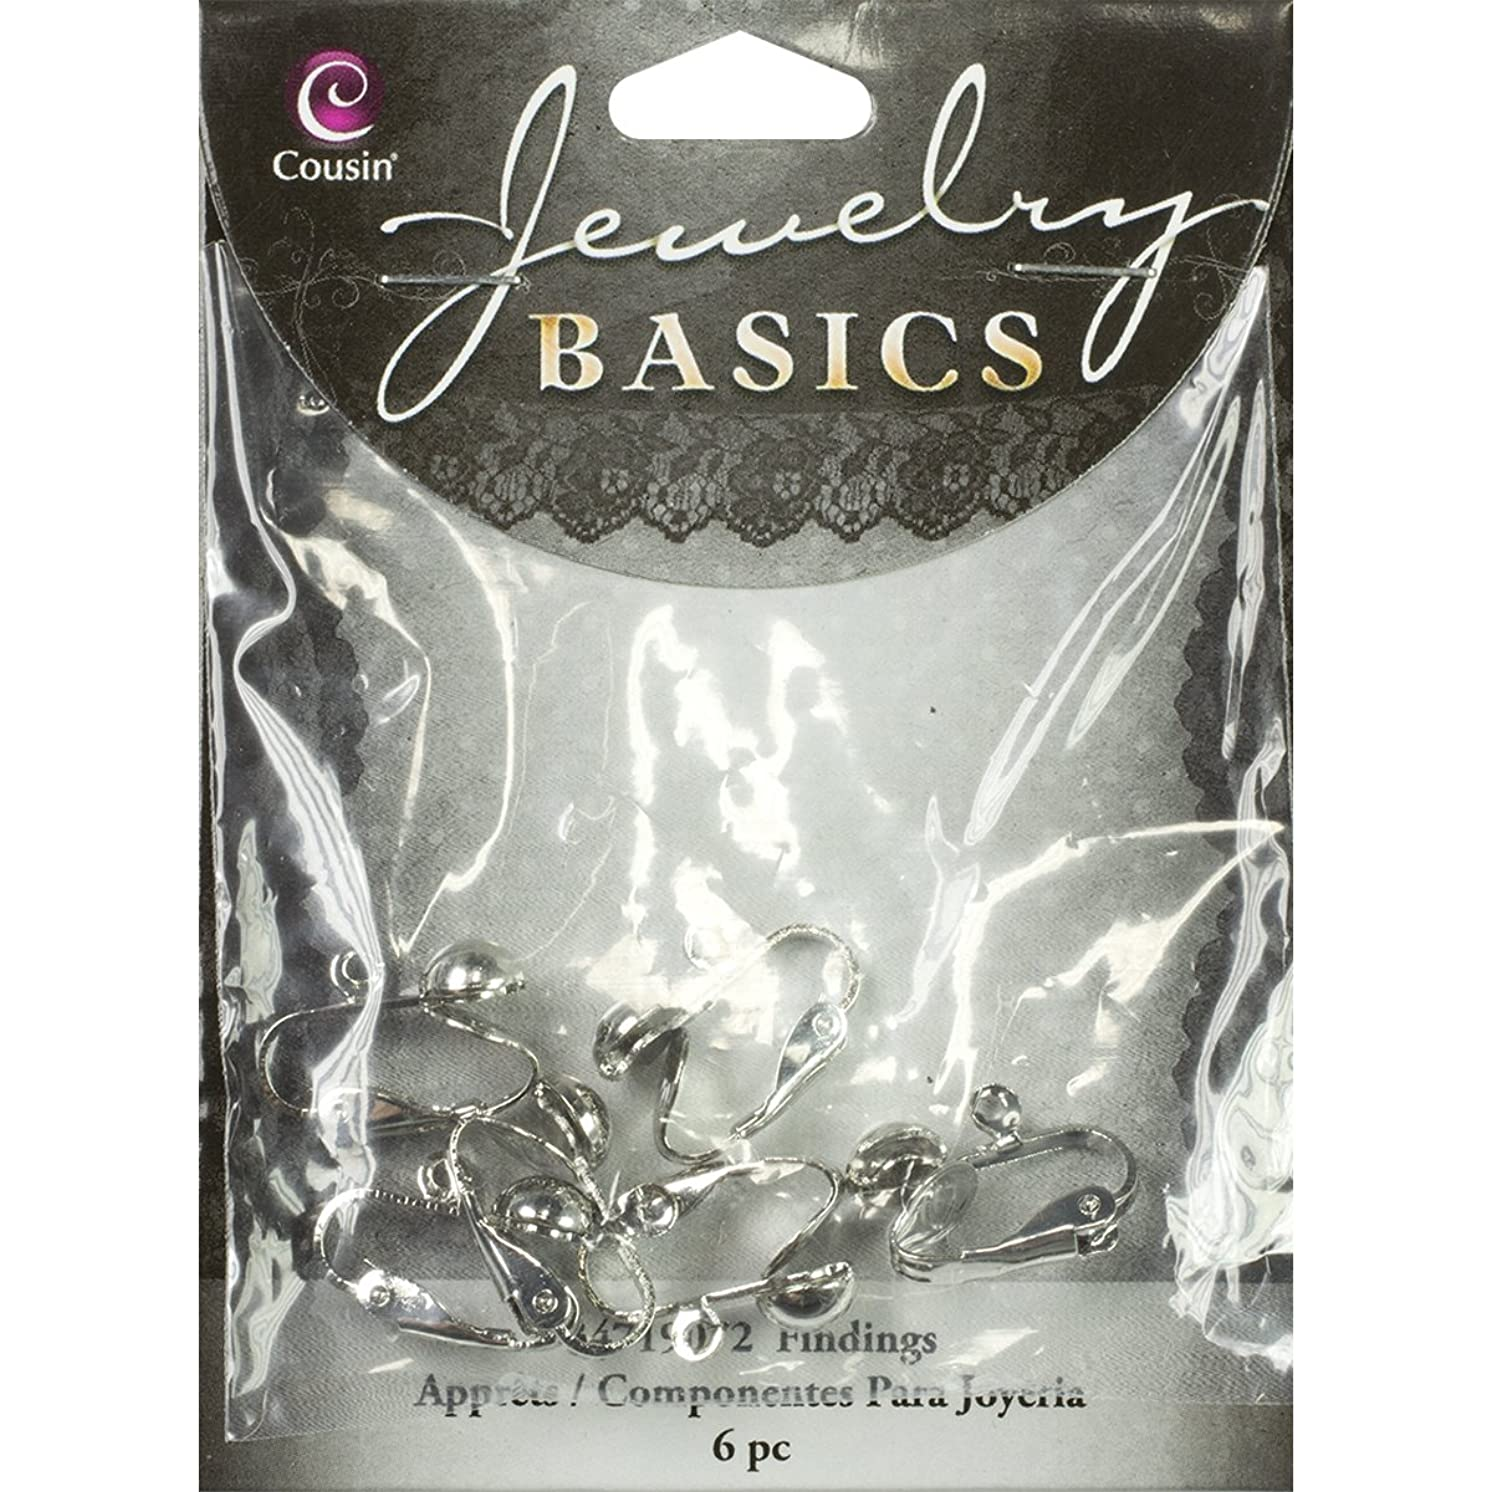 Cousin Jewelry Basics Clip-on Earring with Loop, Silver, 6-Piece